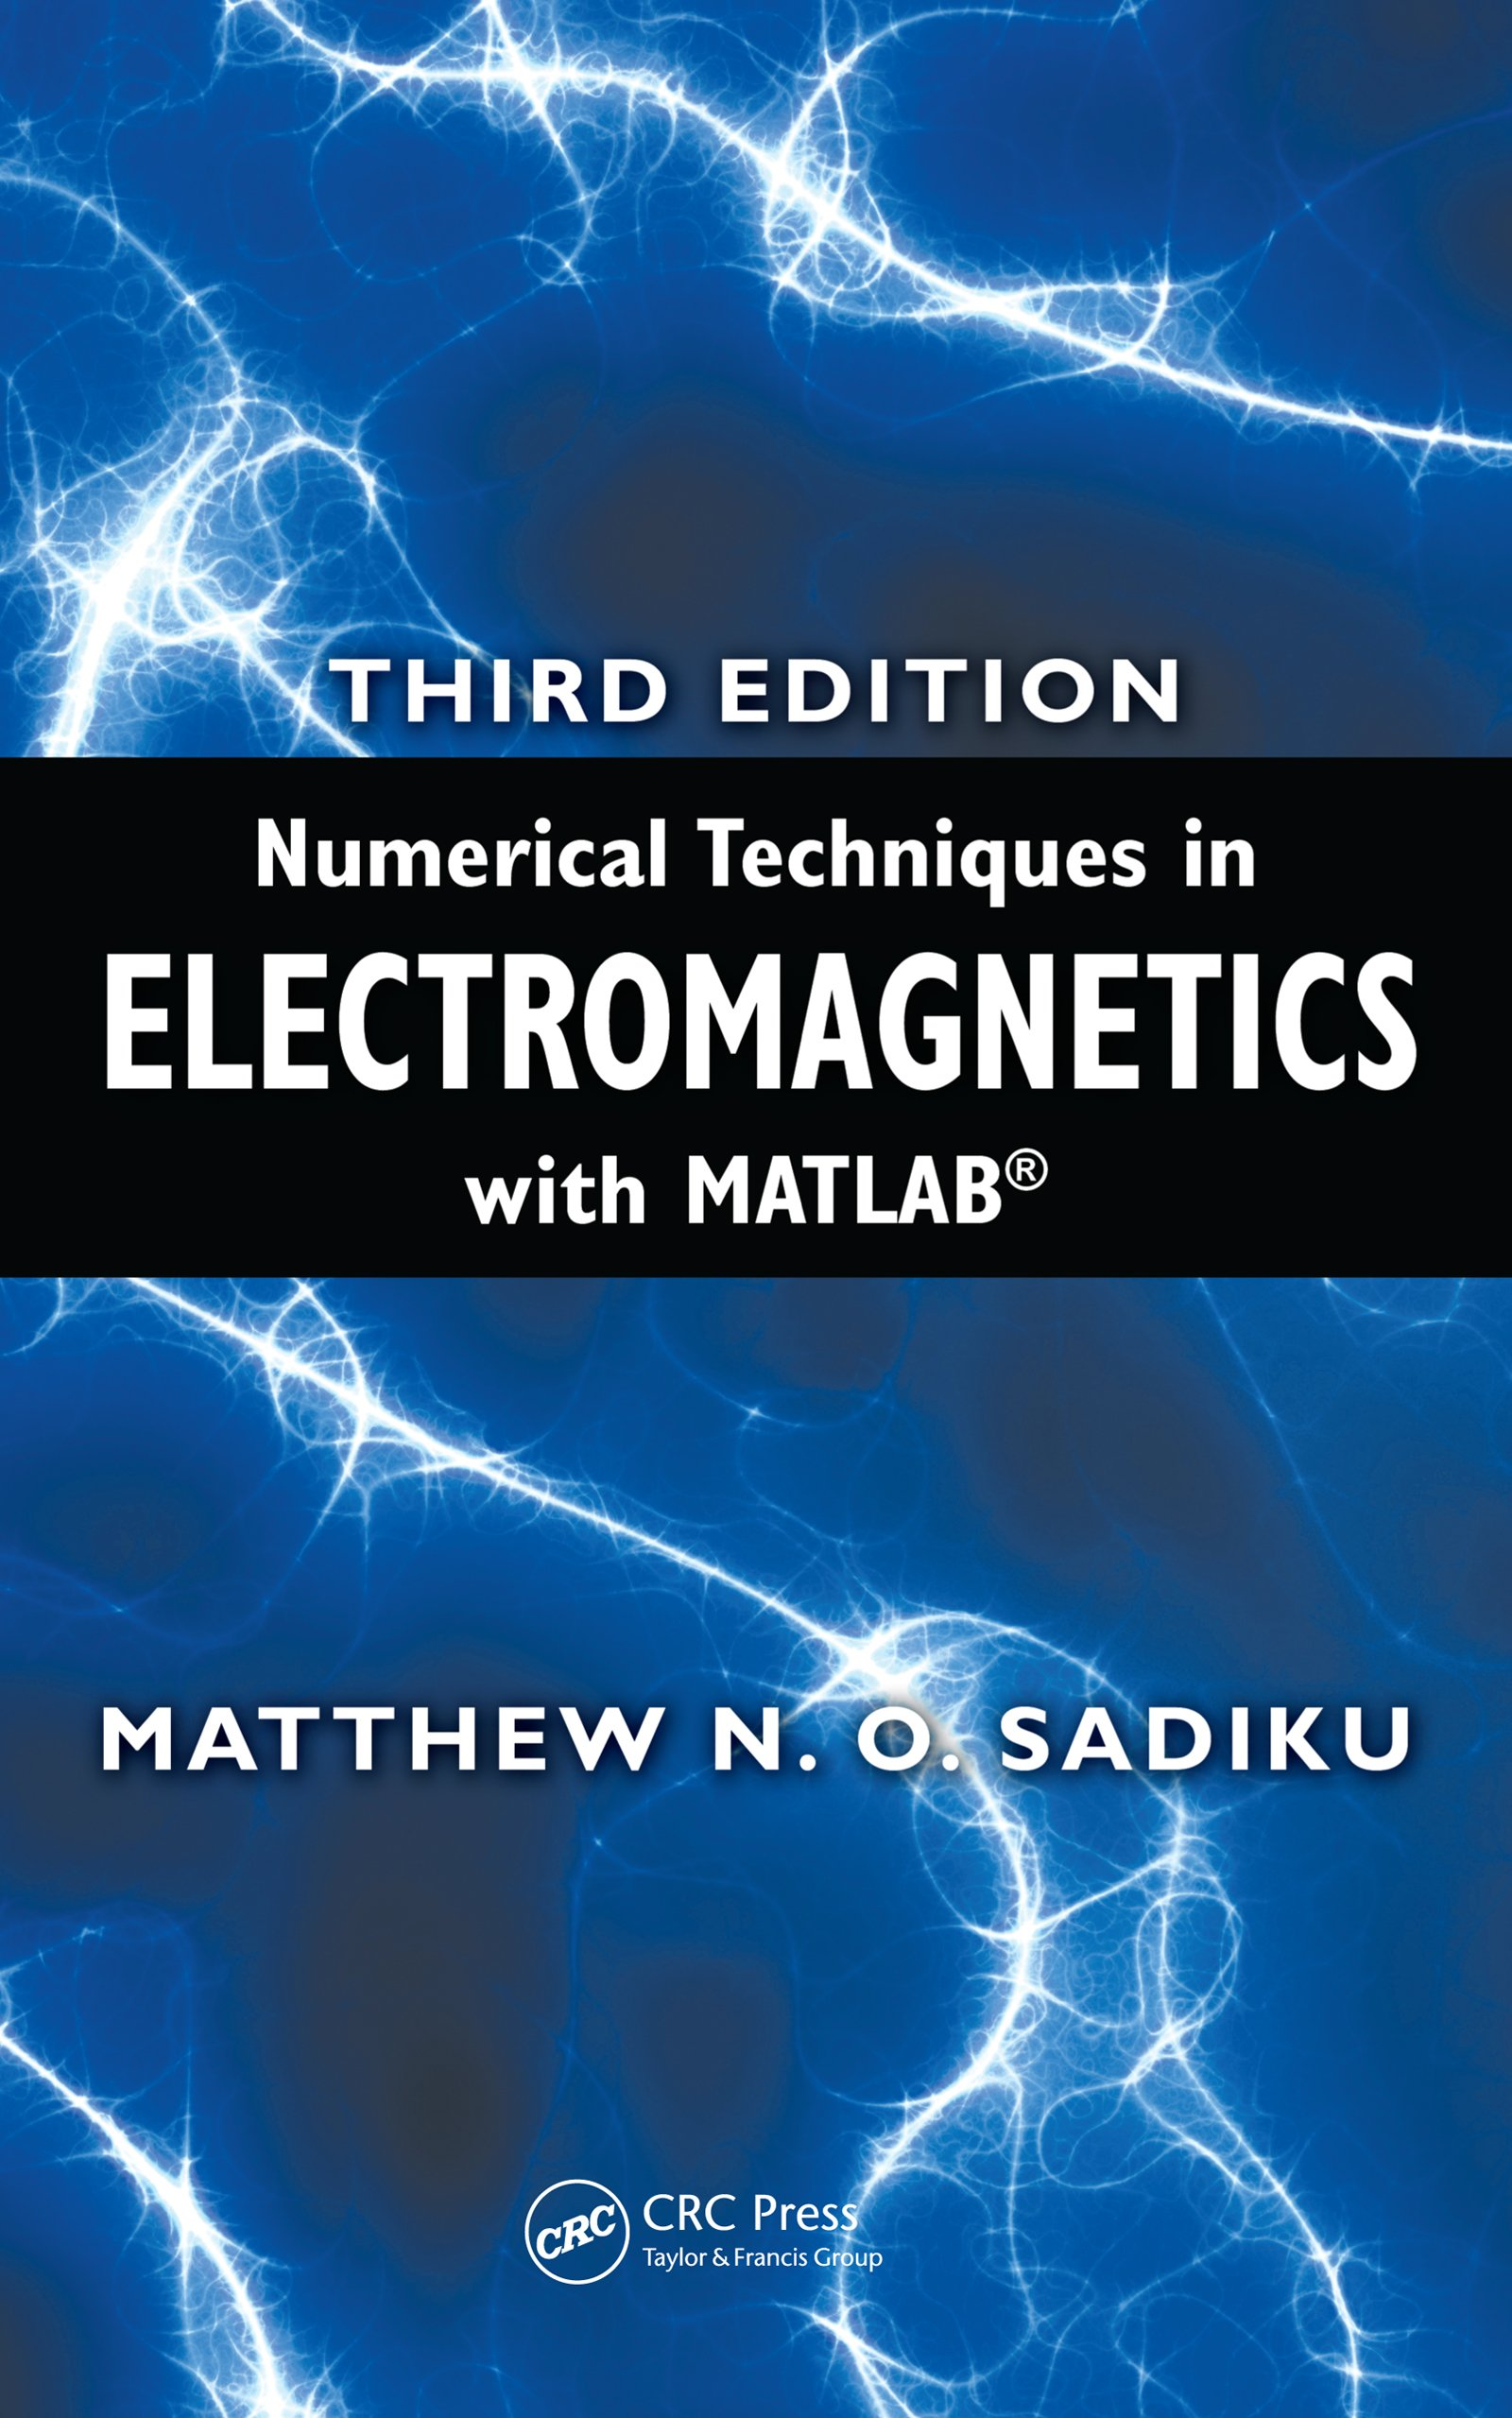 Numerical Techniques In Electromagnetics With Matlab Sadiku Matthew N O Ebook Amazon Com